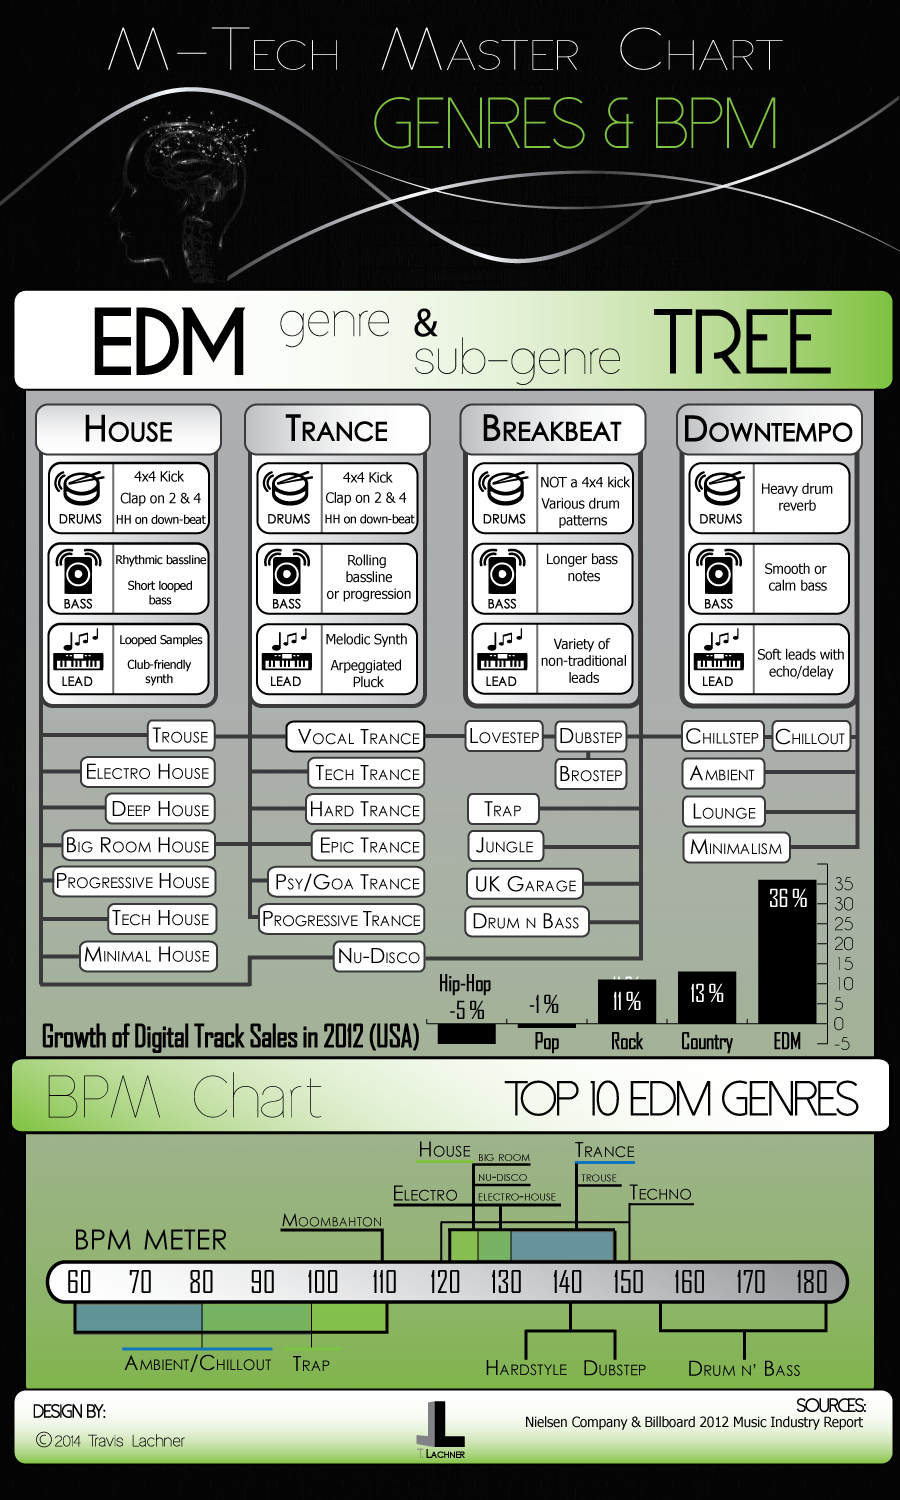 Master chart showing the relationships of specific EDM